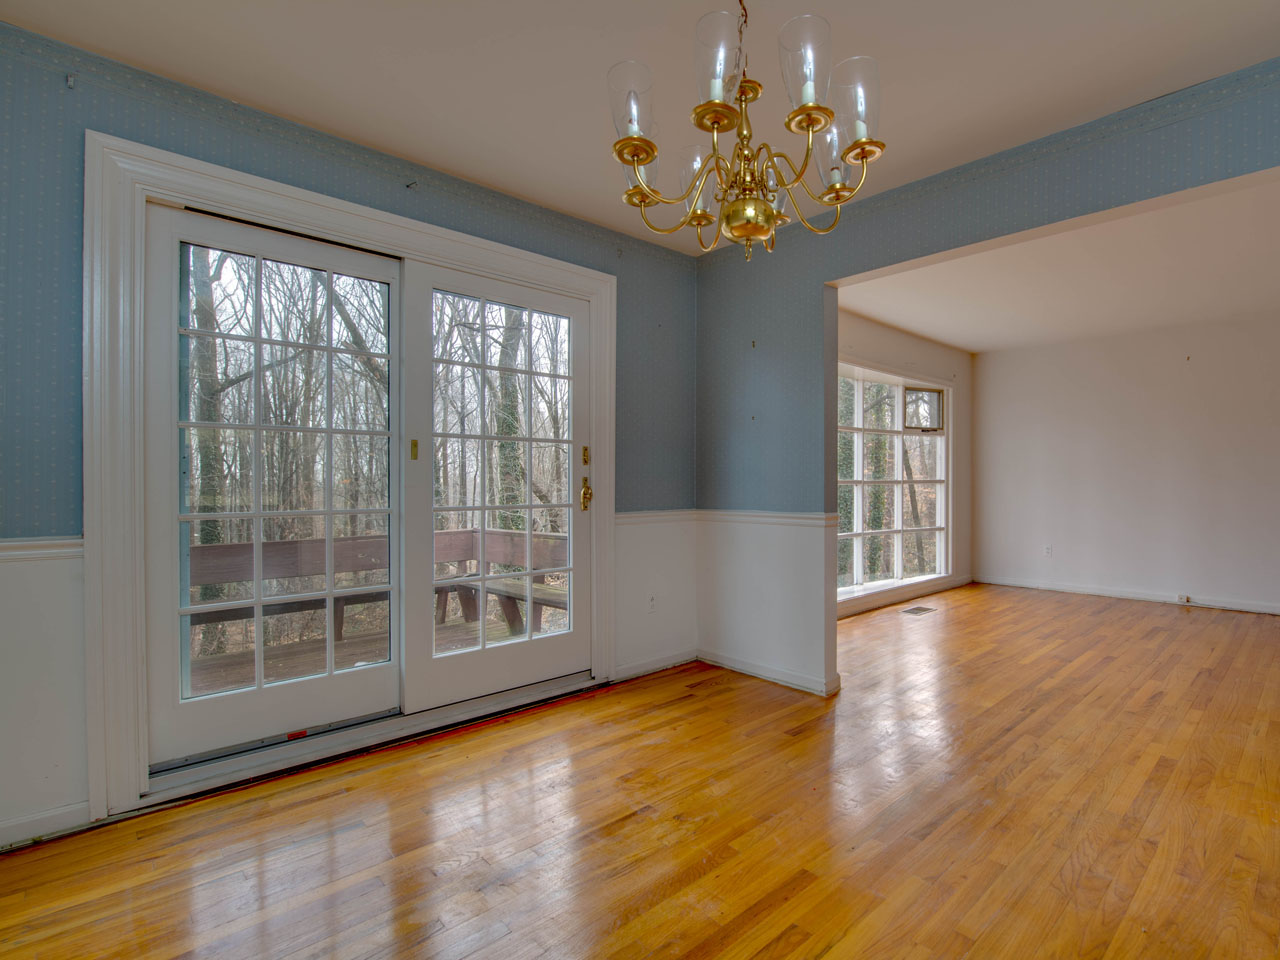 2953_dr-1 Dodson Annandale Real Estate Listings - Best of Northern Virginia